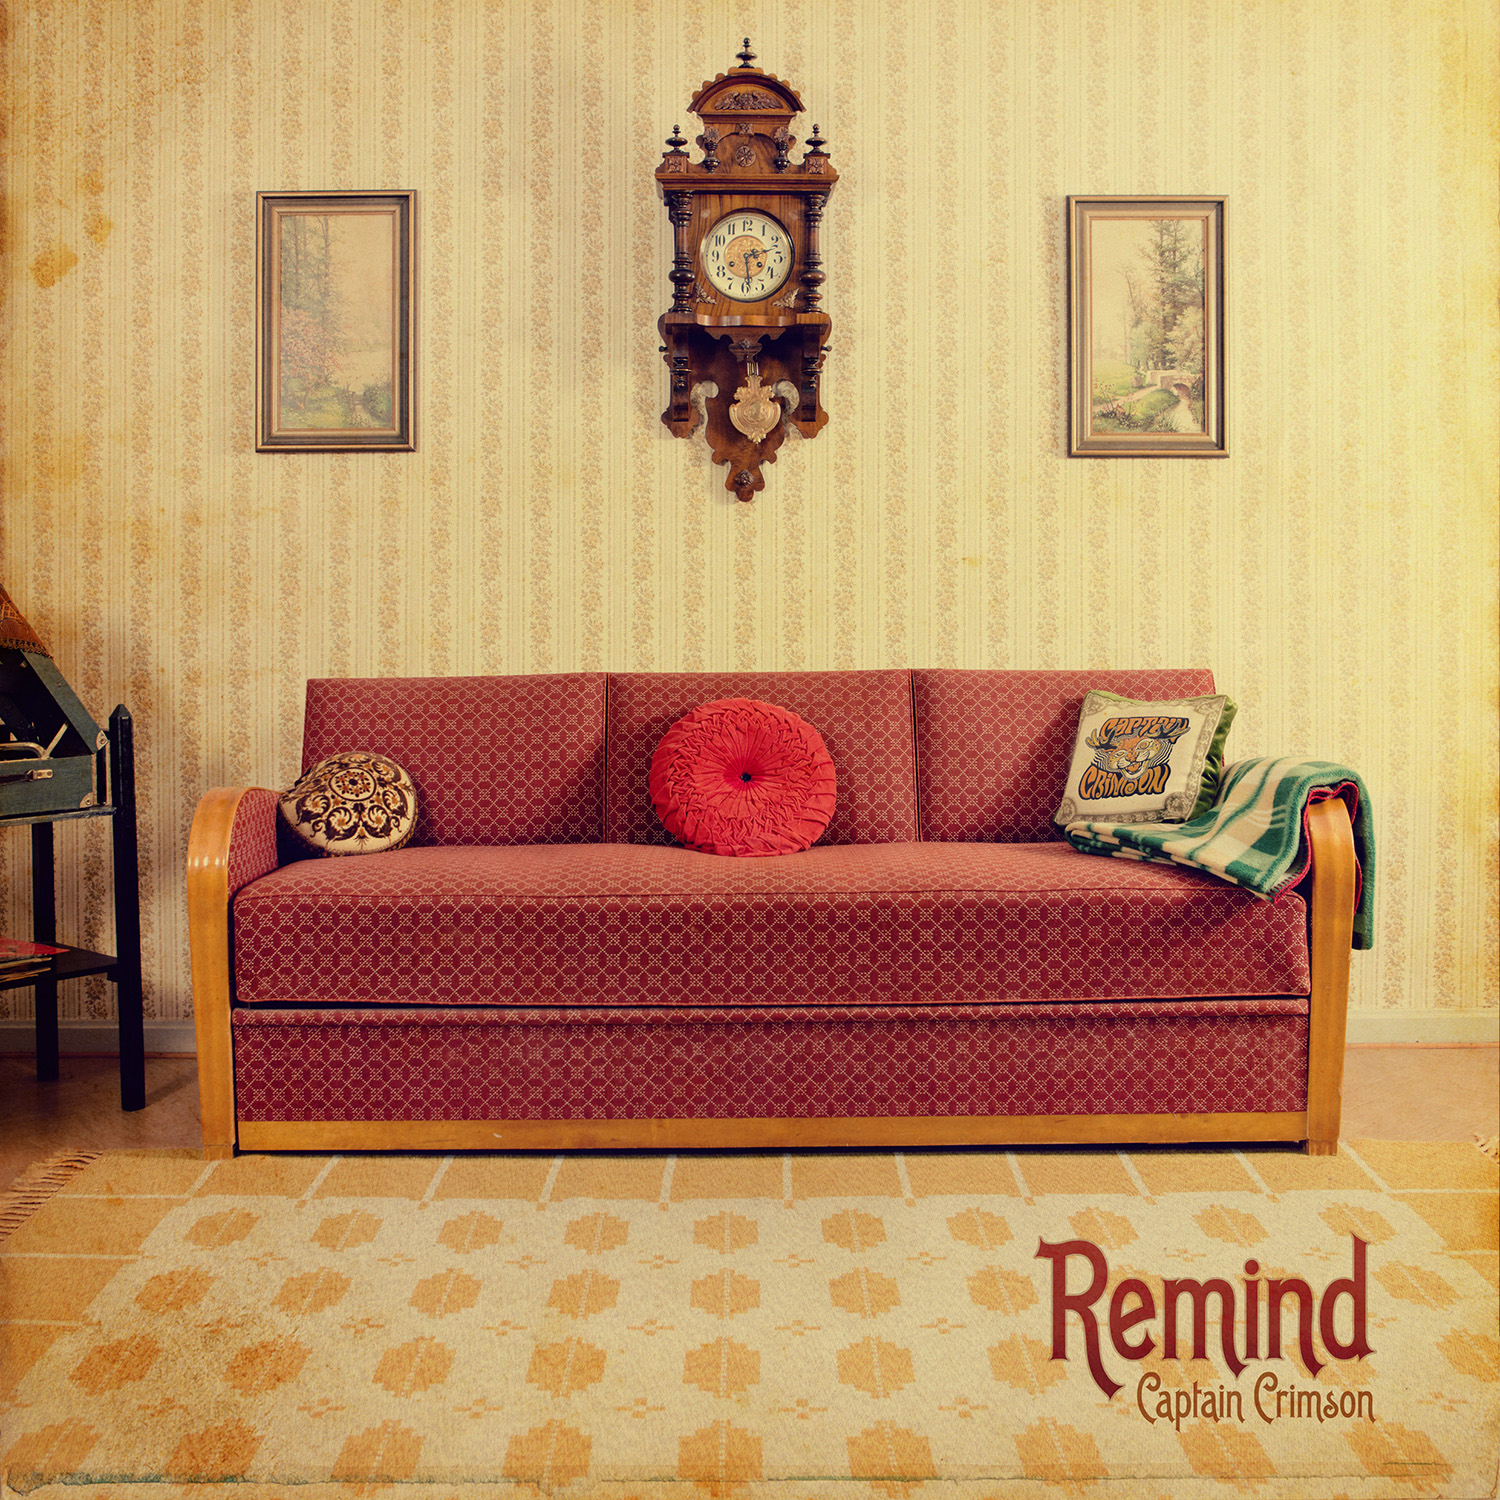 cc_remind_frontcover